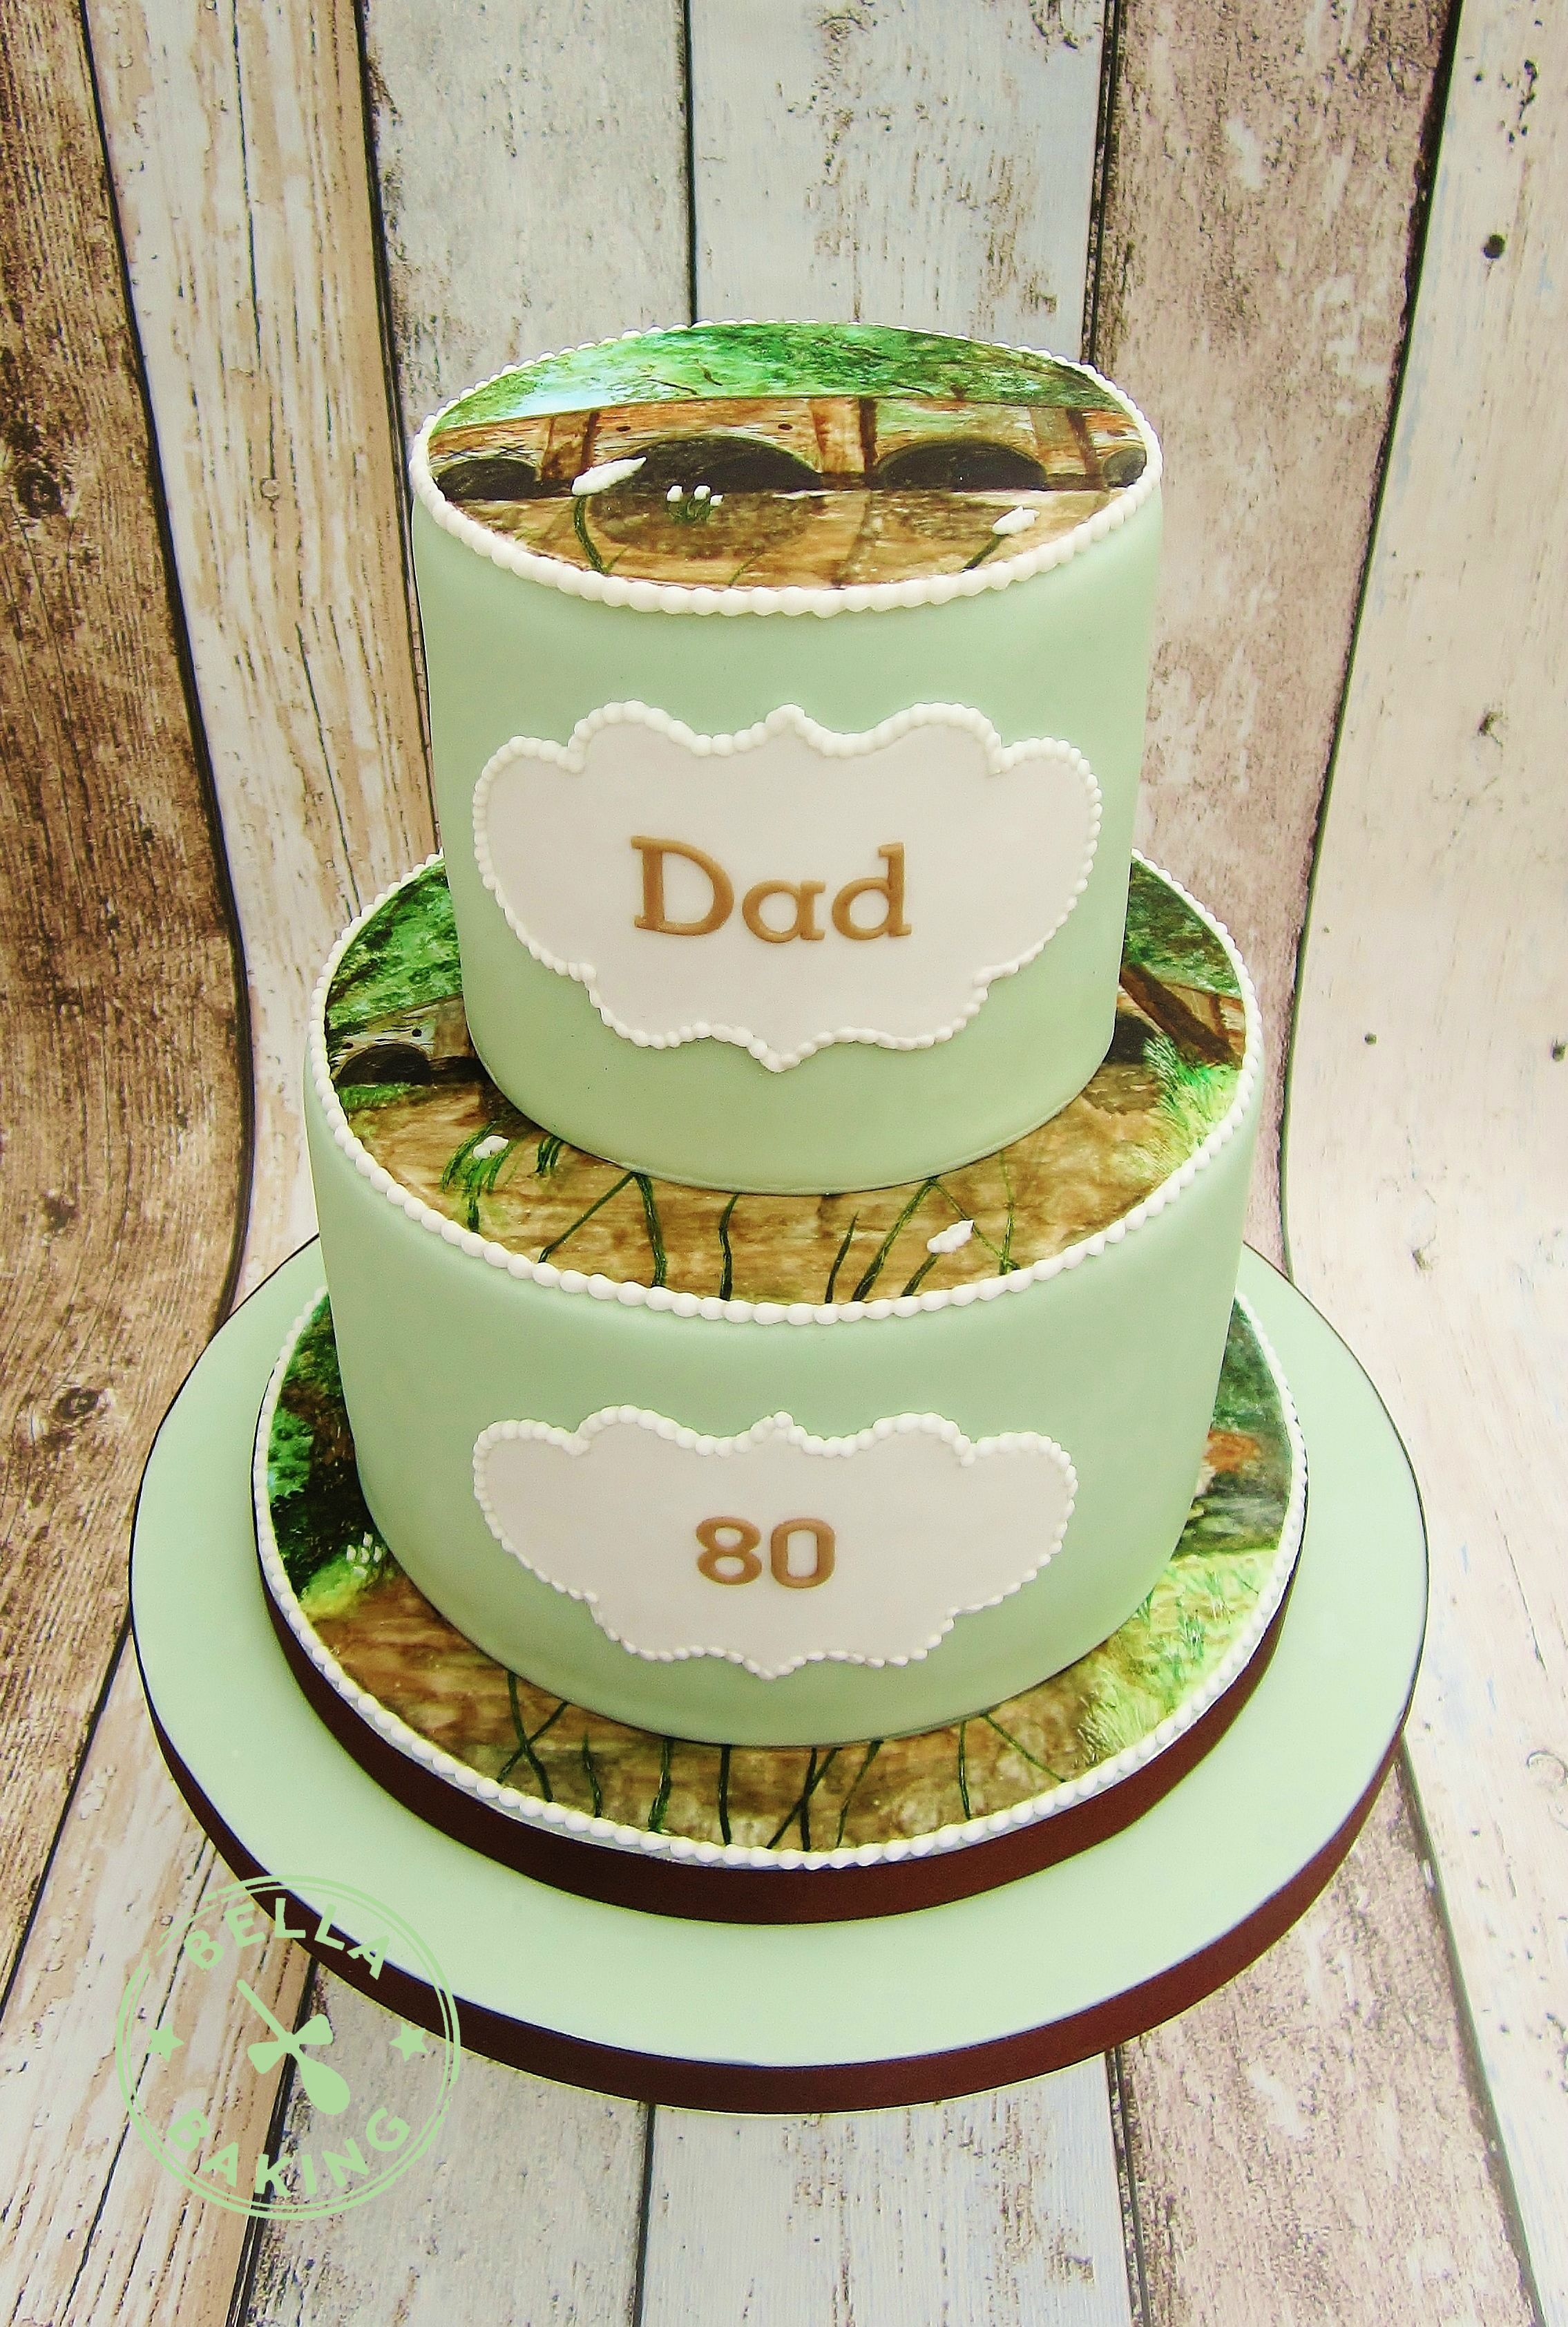 My Dads 80th birthday cake Bella Baking Cakes before I became